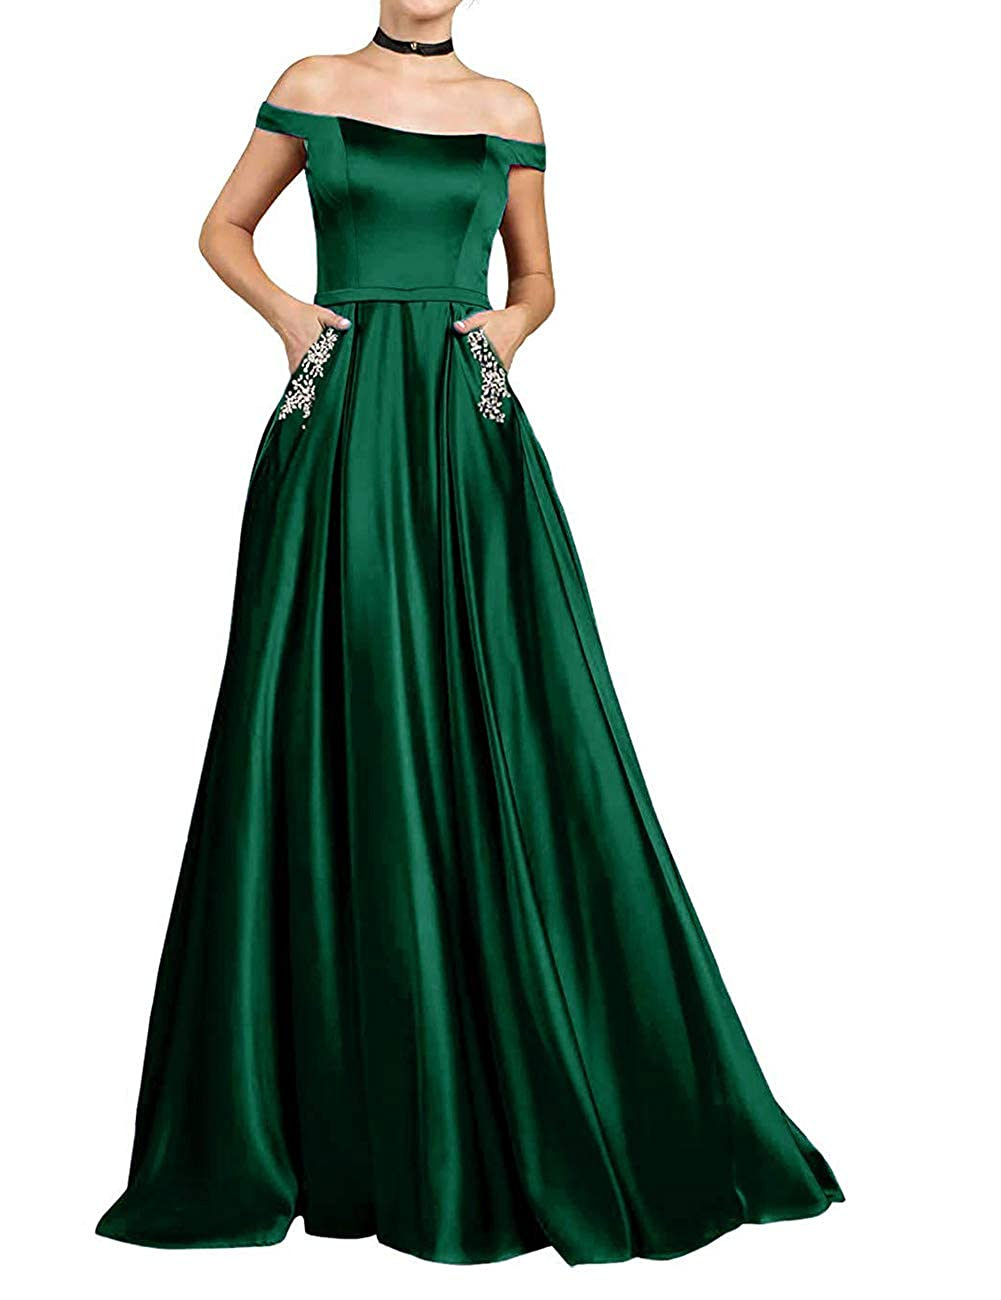 Dark Green JAEDEN Prom Dresses Long Formal Evening Gowns with Pocket Off The Shoulder Prom Dress A line Evening Dresses